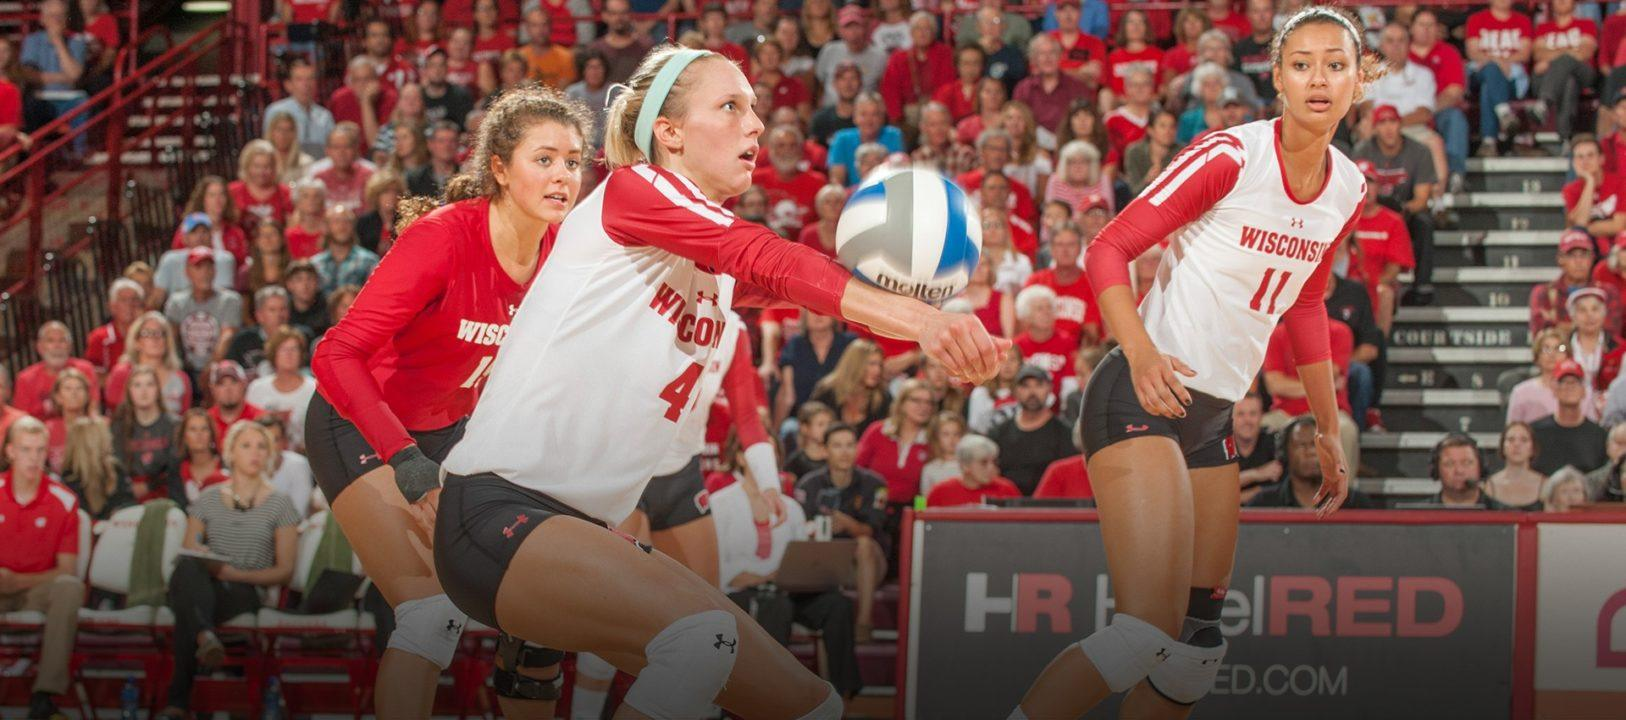 #3 Wisconsin Remains Undefeated in Big Ten After Sweeping Indiana